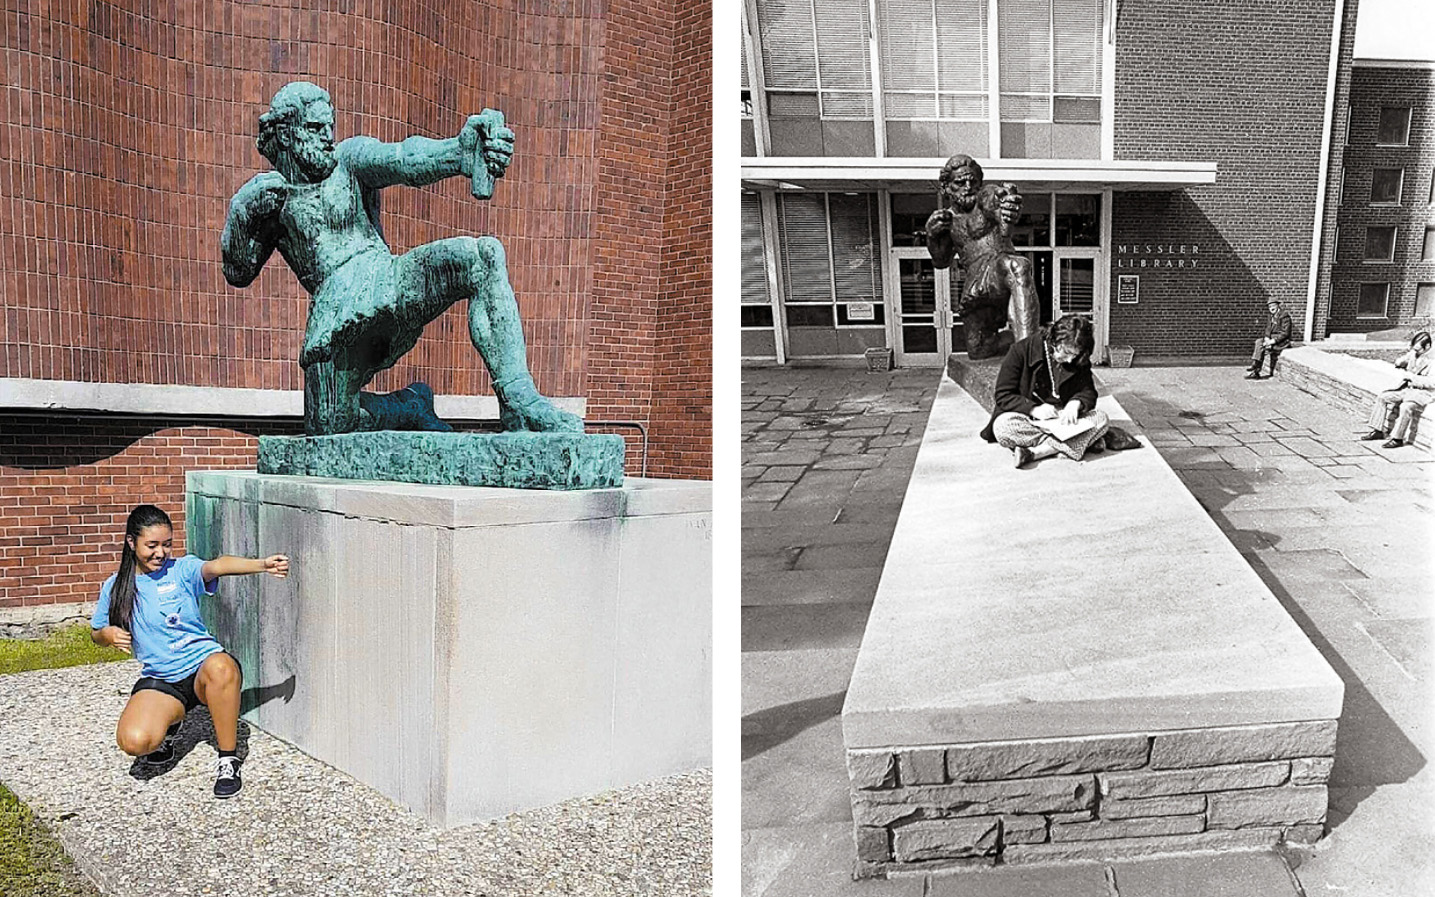 Two photos, side by side: on the left, a young woman mimics the pose of the Ulysses statue, arching back. On the right, a young woman sits reading in front of the Ulysses statue.